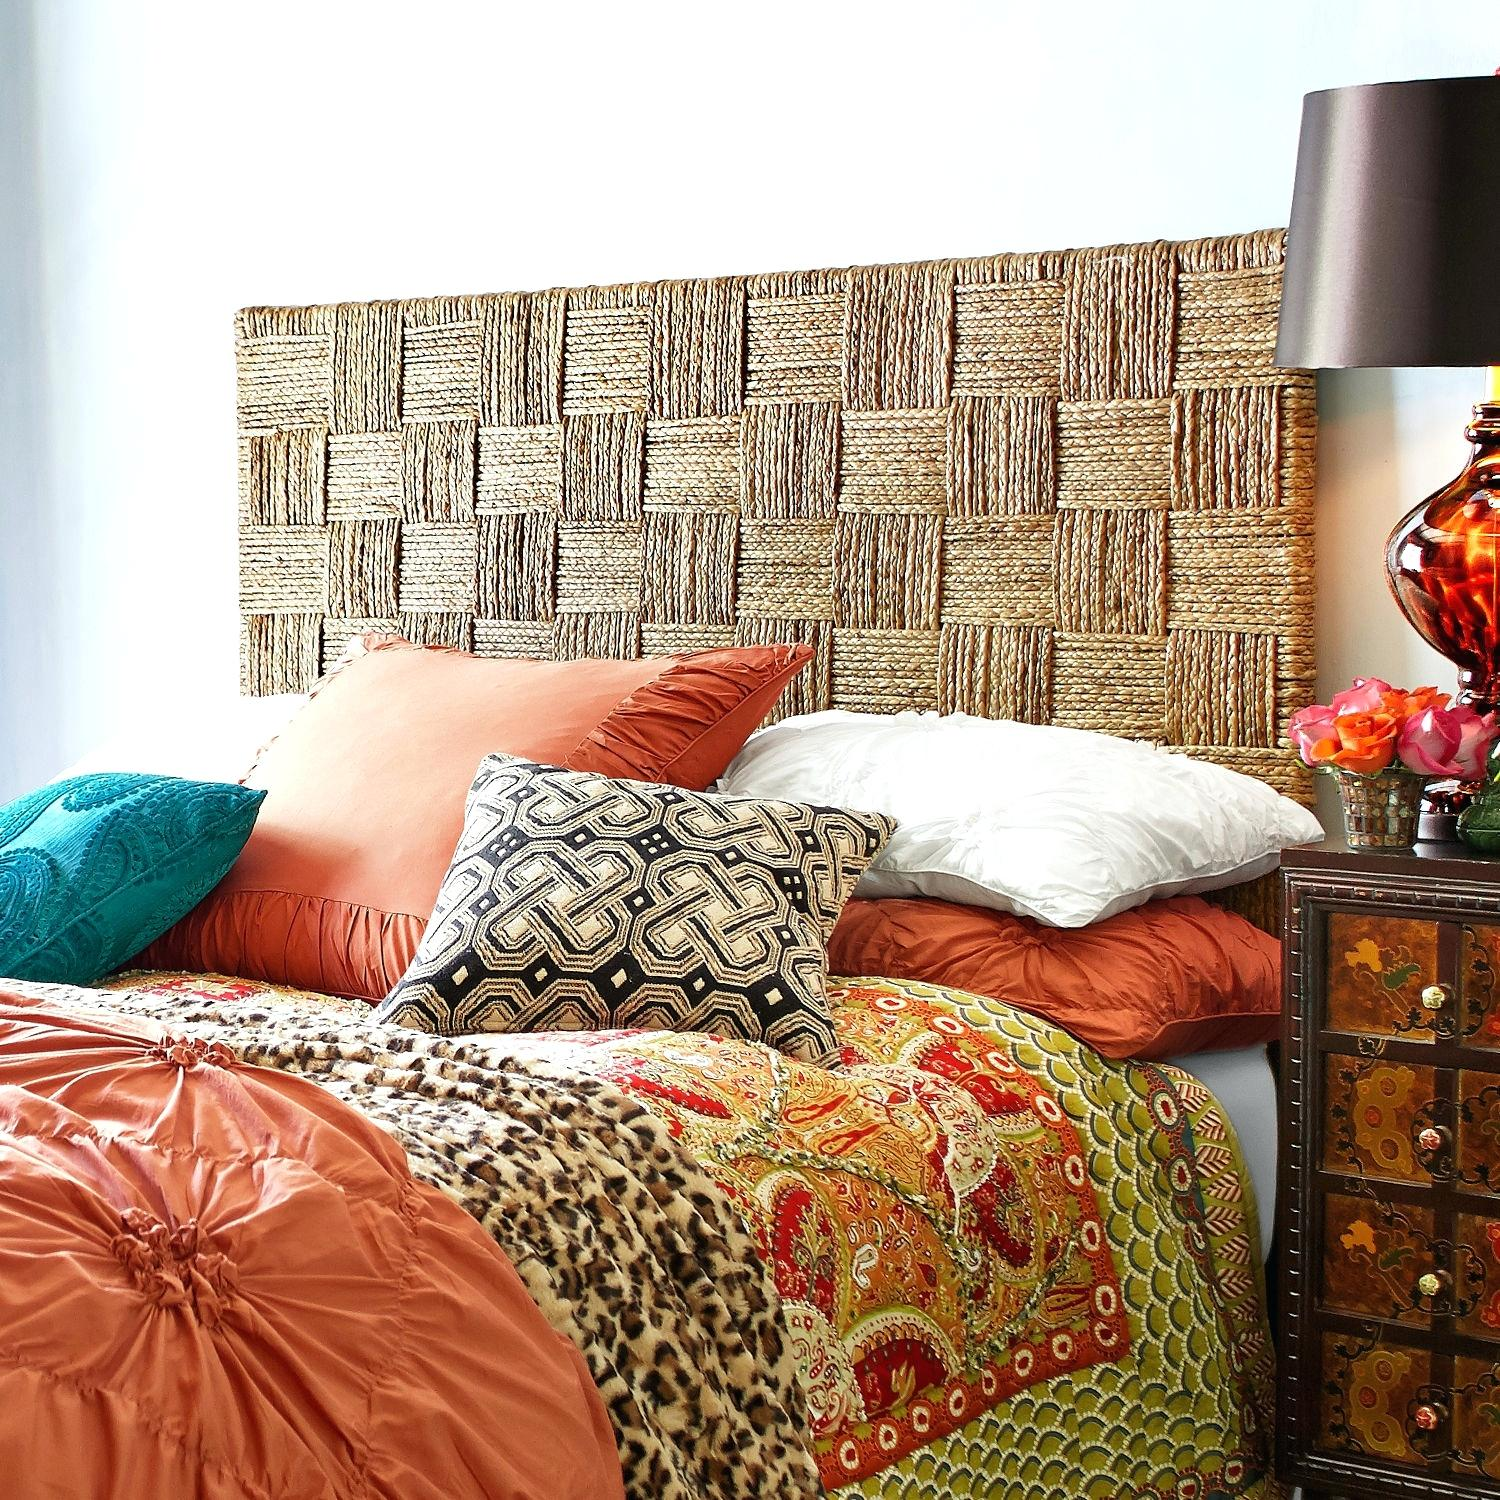 Seagrass Headboard King | Wicker Headboards King | Wicker Headboard Queen